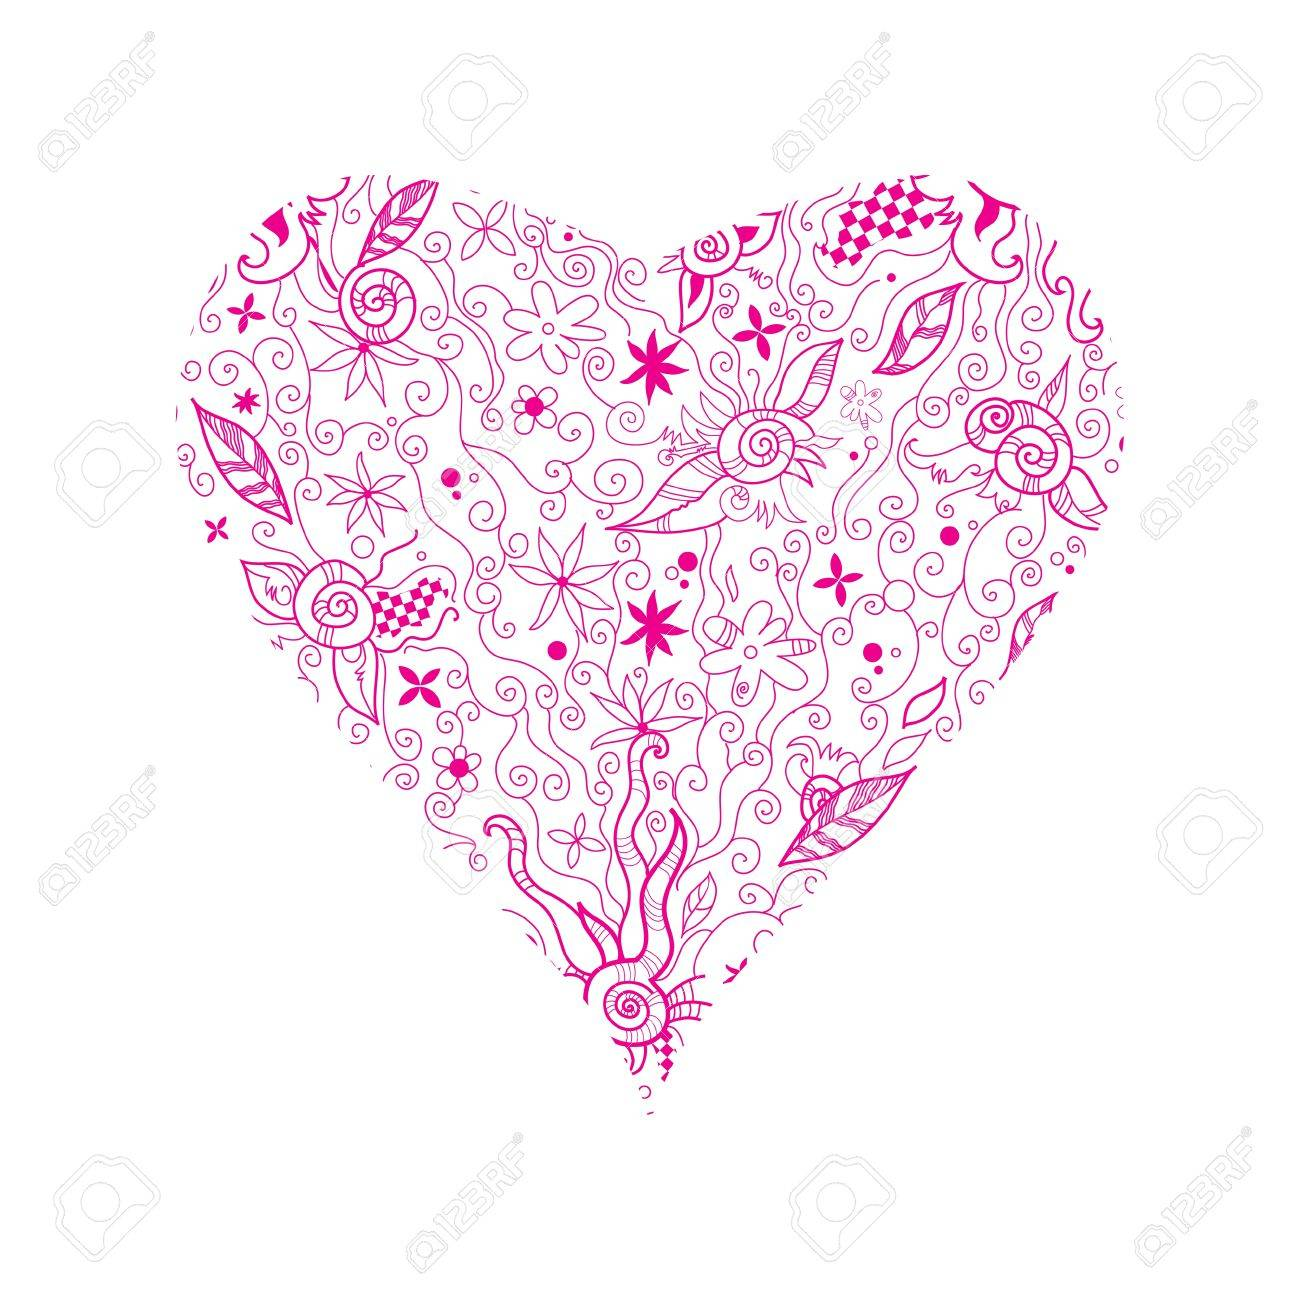 Illustration of pink floral  hand drawn heart shape on white Stock Vector - 14047549